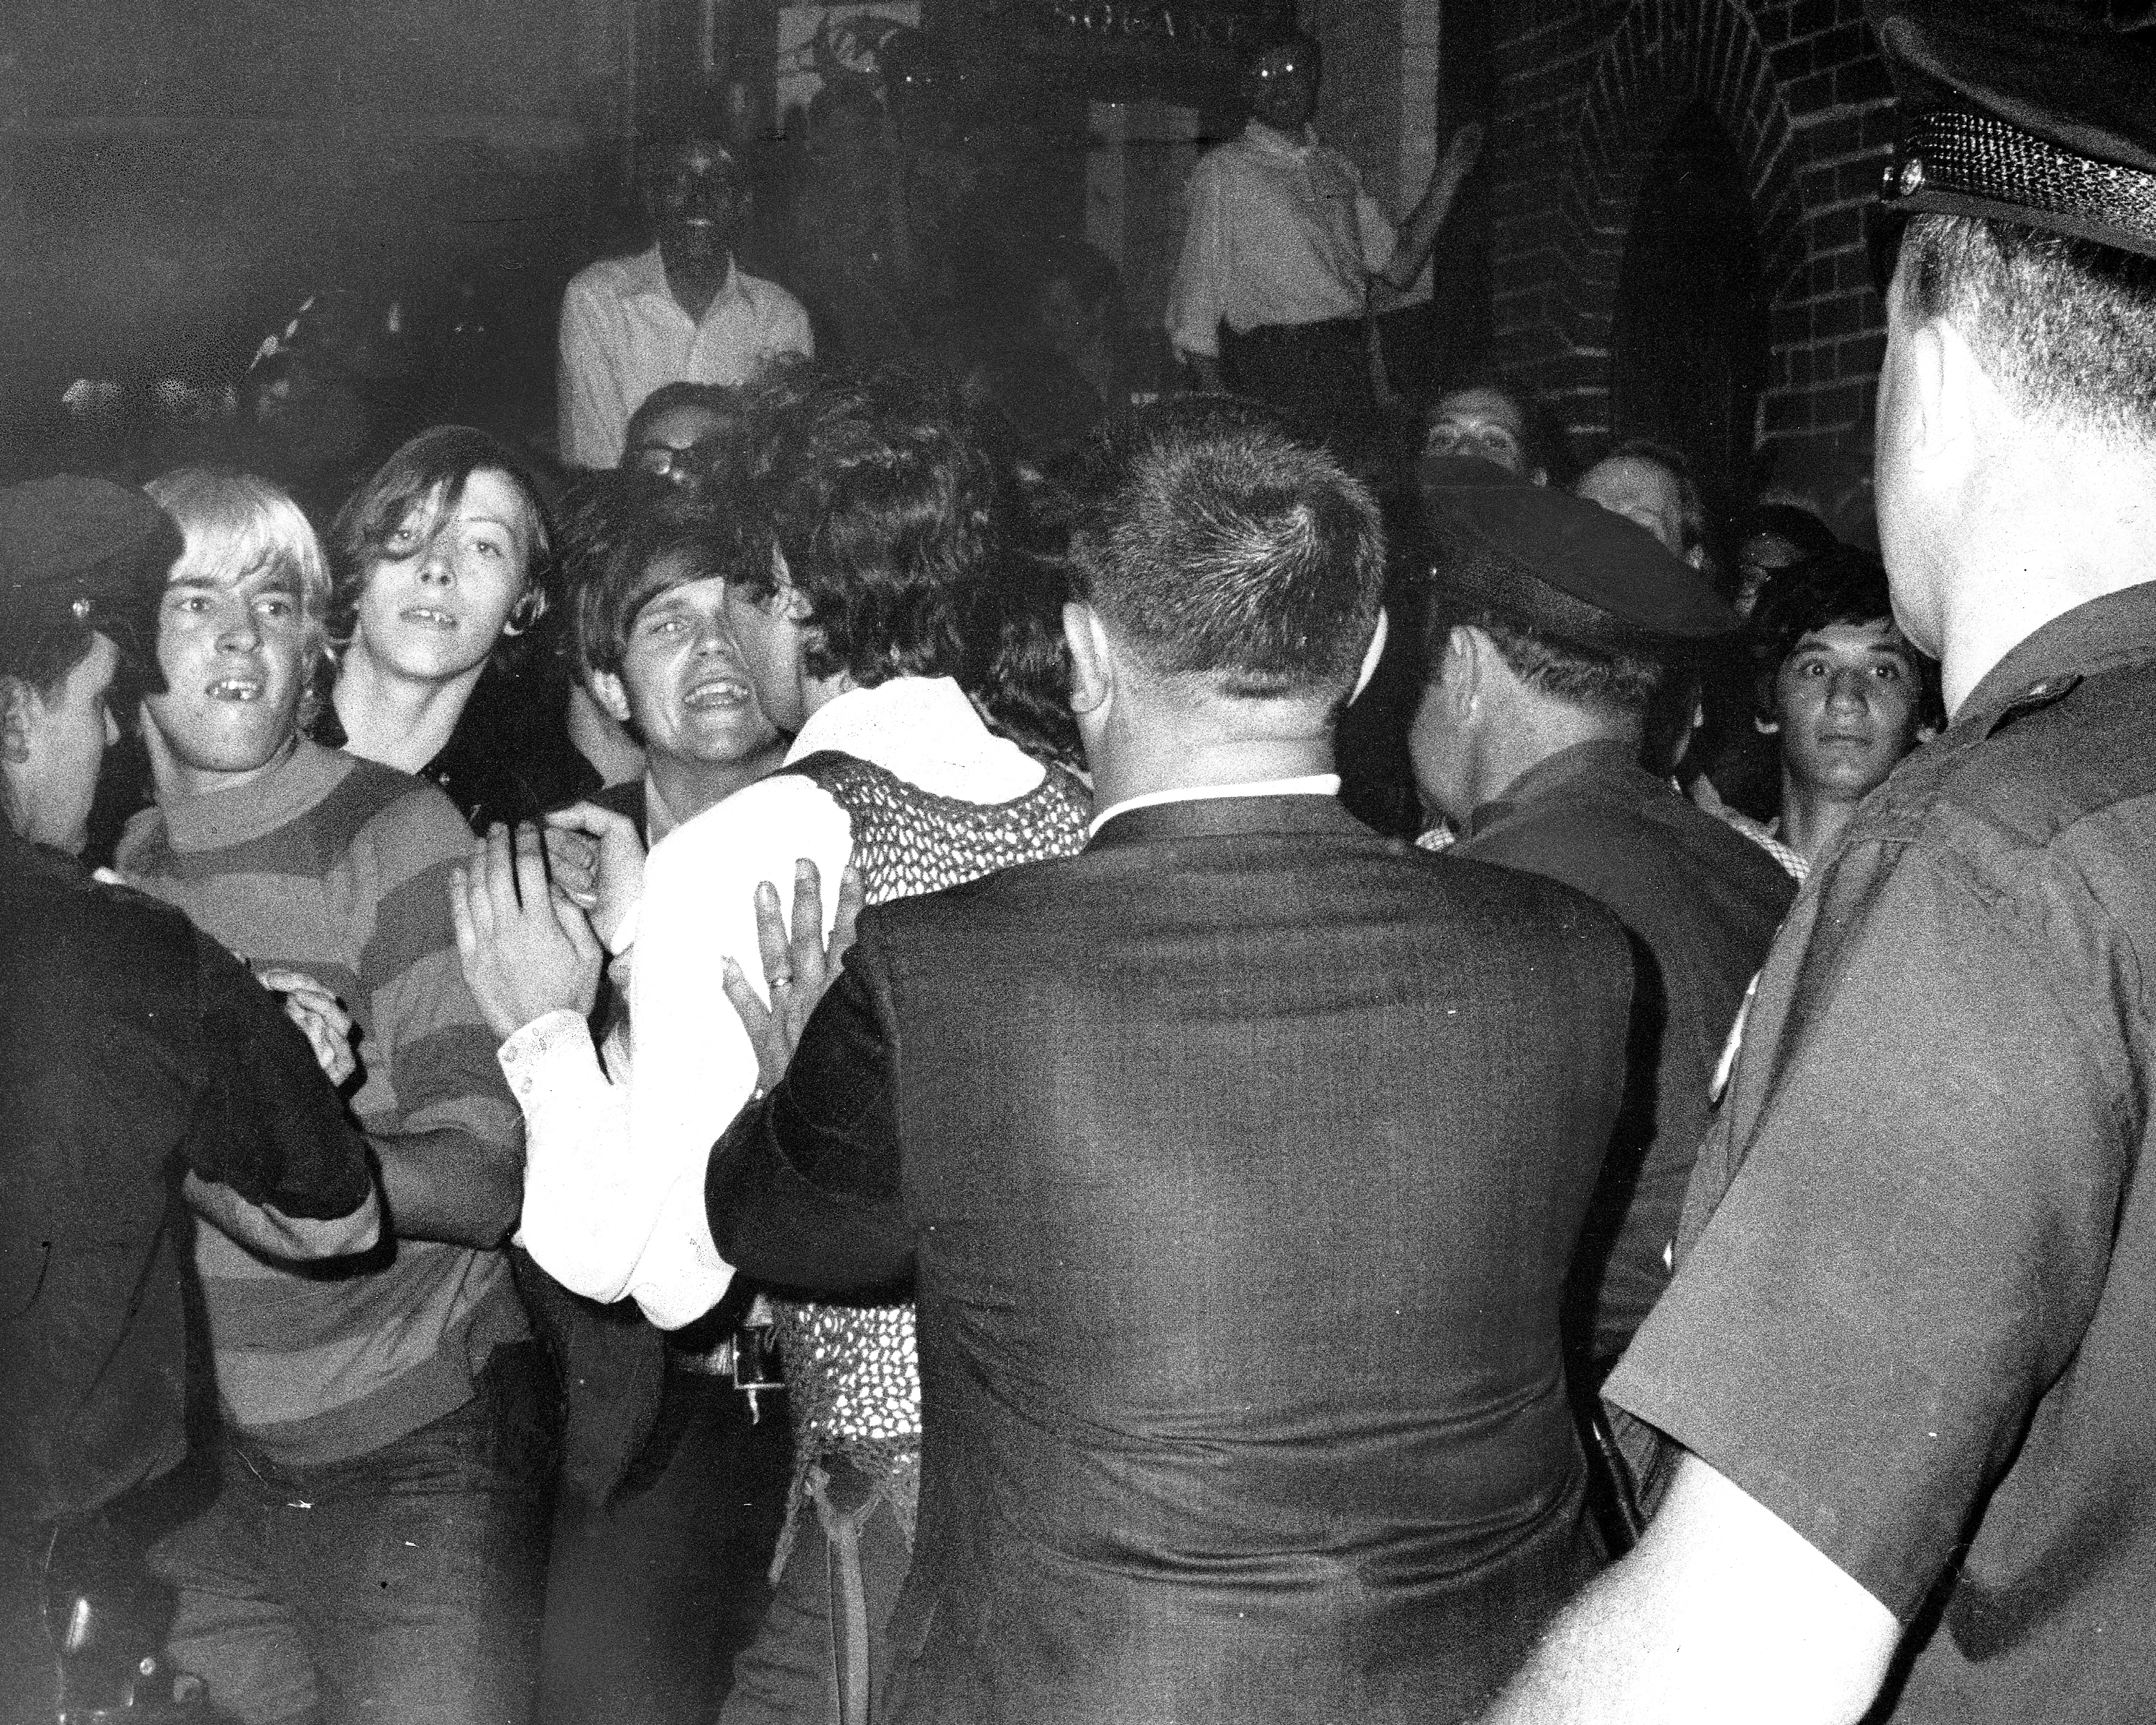 Remembering the Stonewall Riots, 49 years after they sparked the gay rights movement